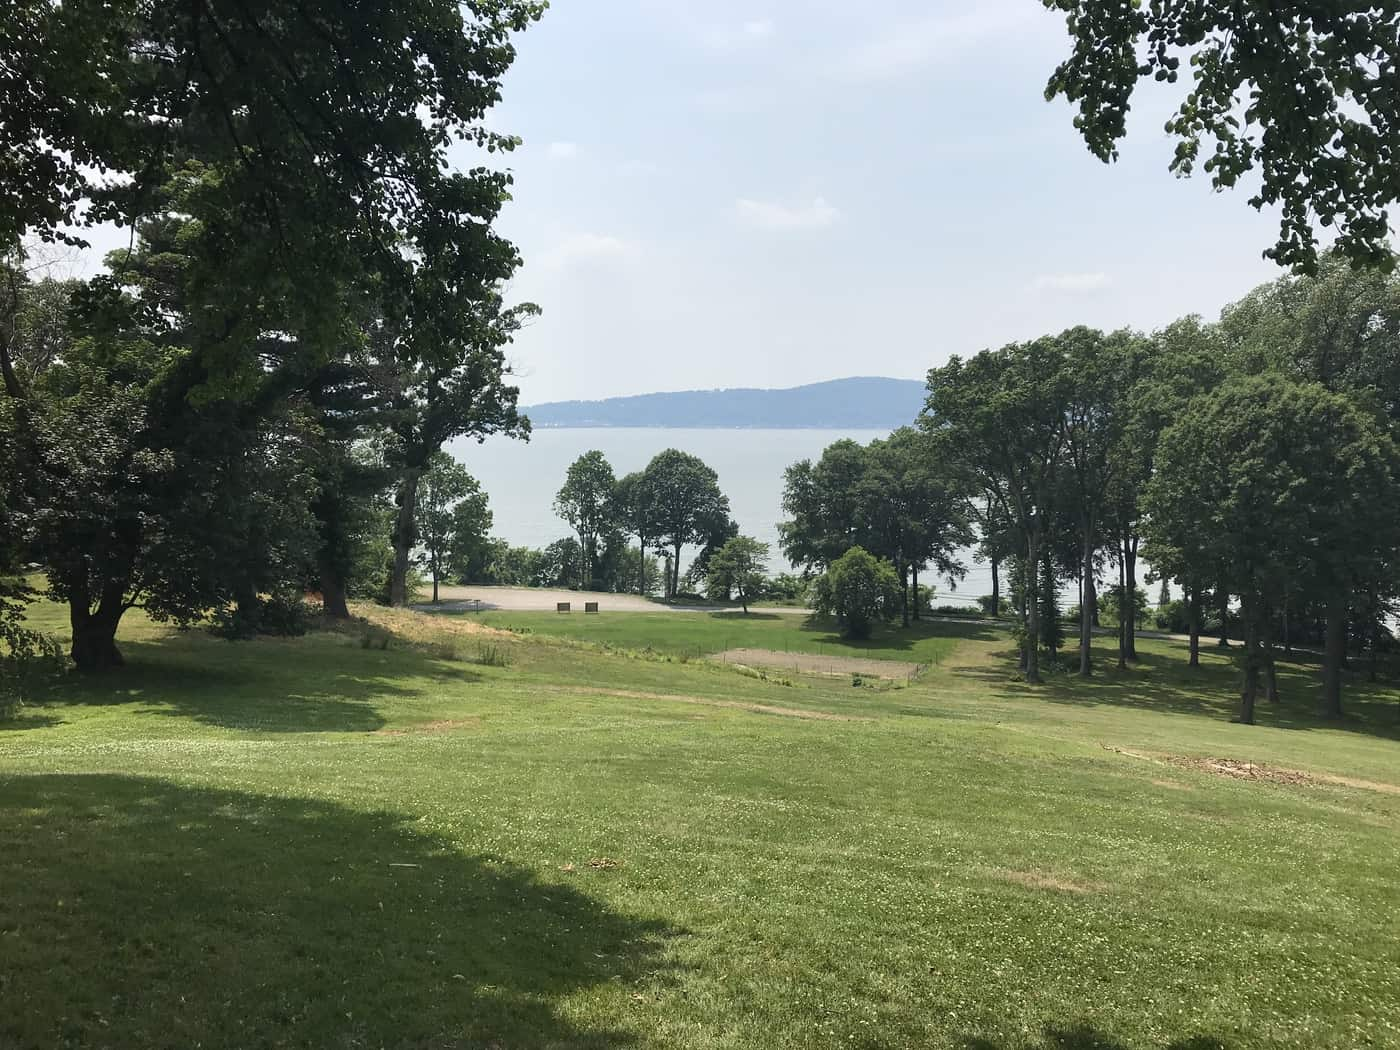 7 Places To See On A Hudson Valley Scenic Drive